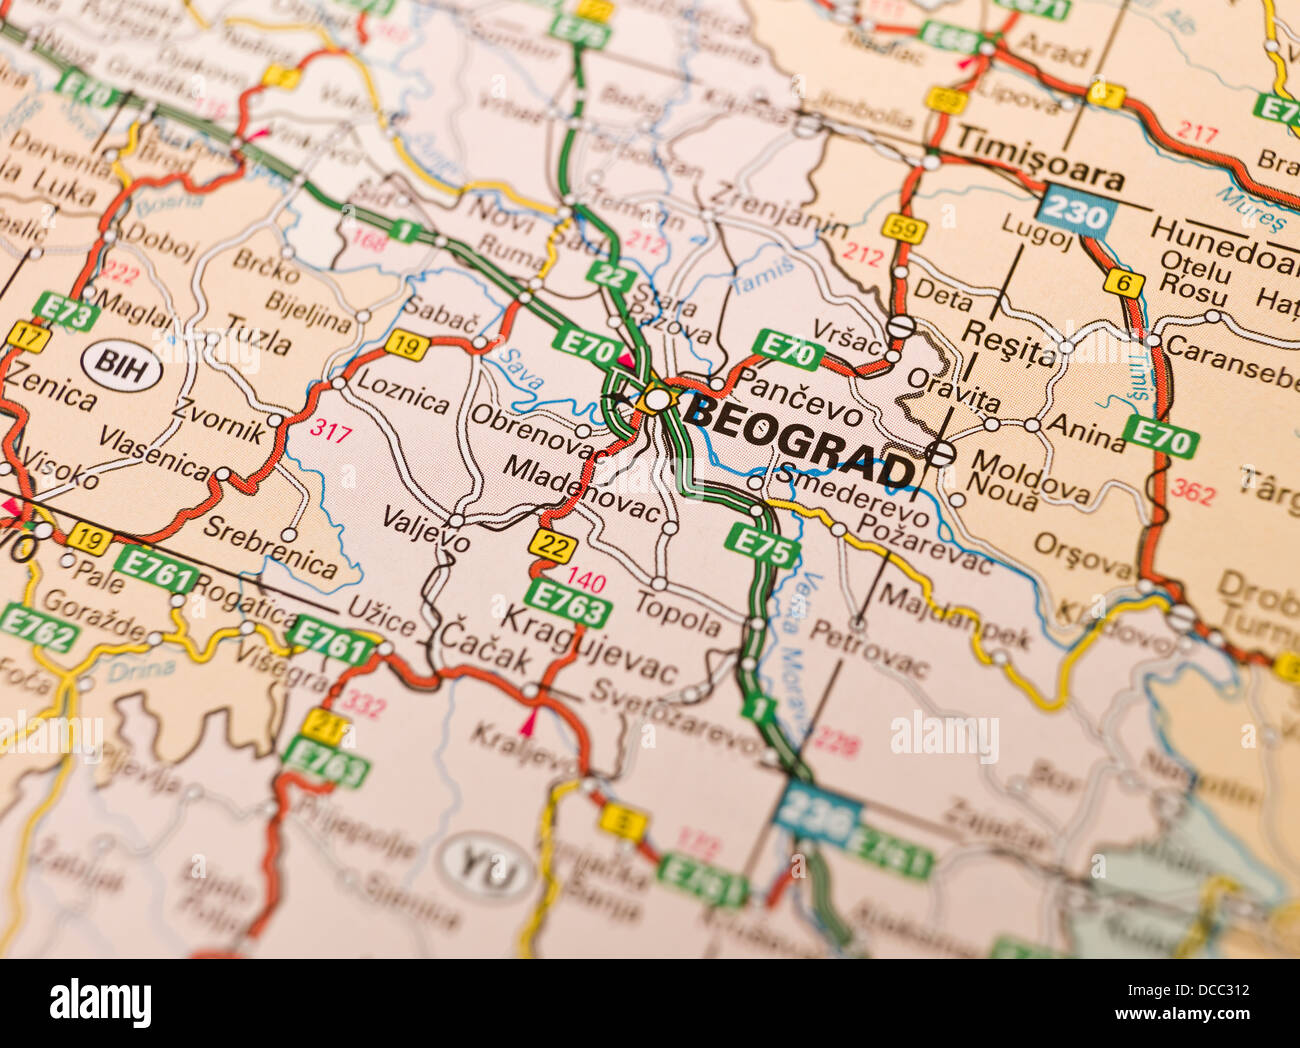 Map Of Beograd Stock Photo 59272782 Alamy